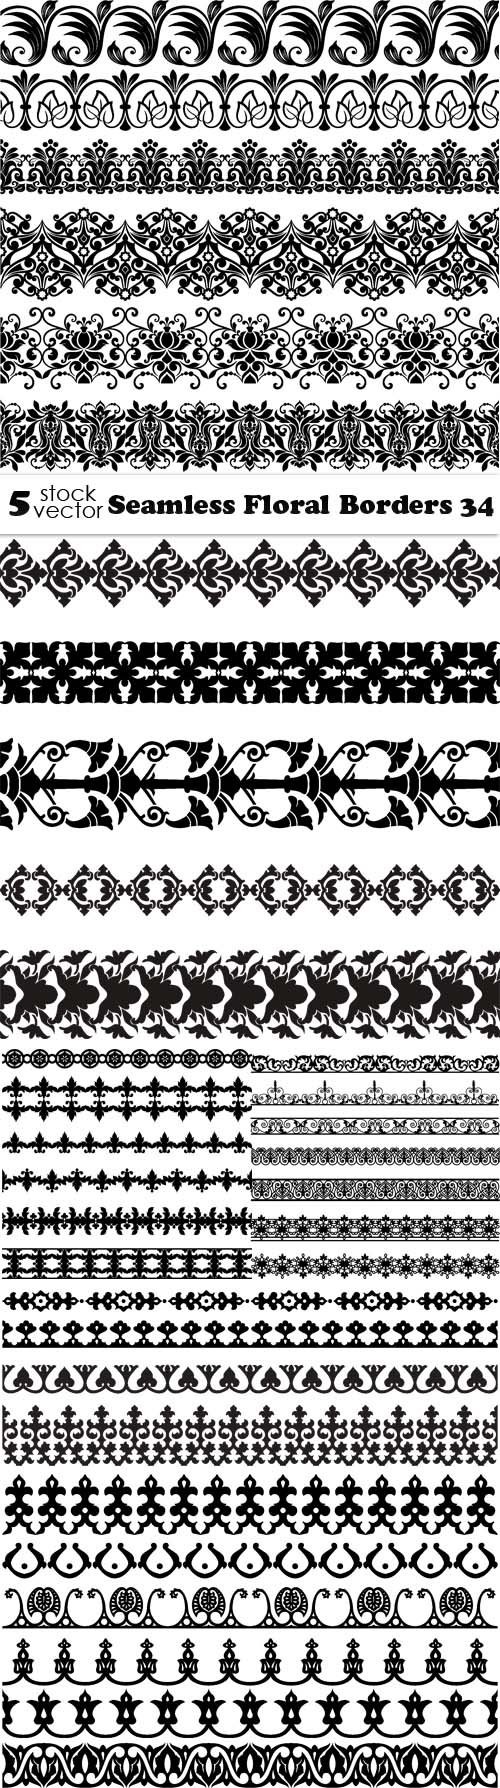 Vectors - Seamless Floral Borders 34